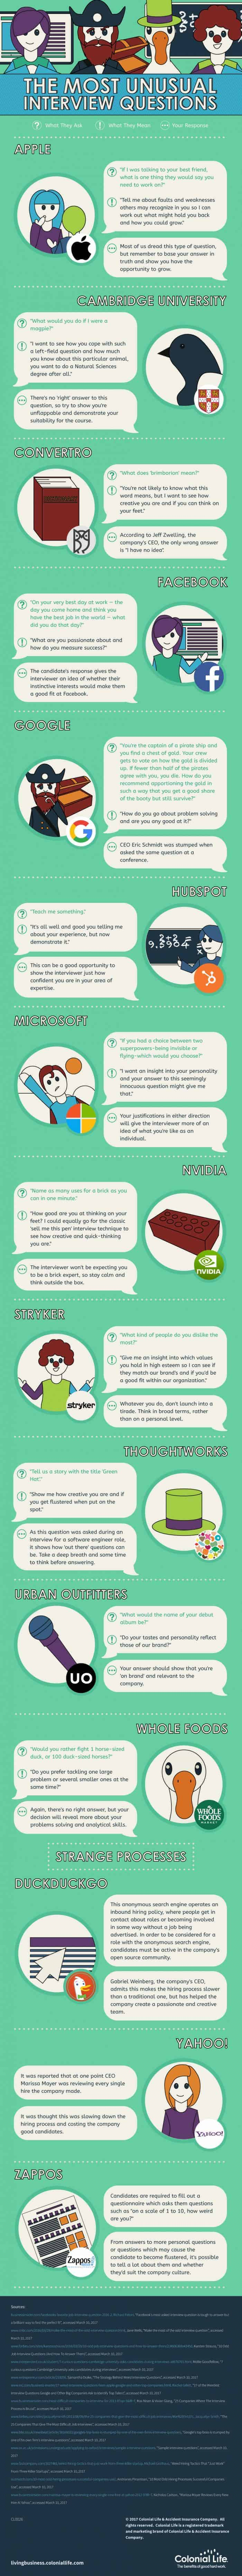 unusual interview questions infographic